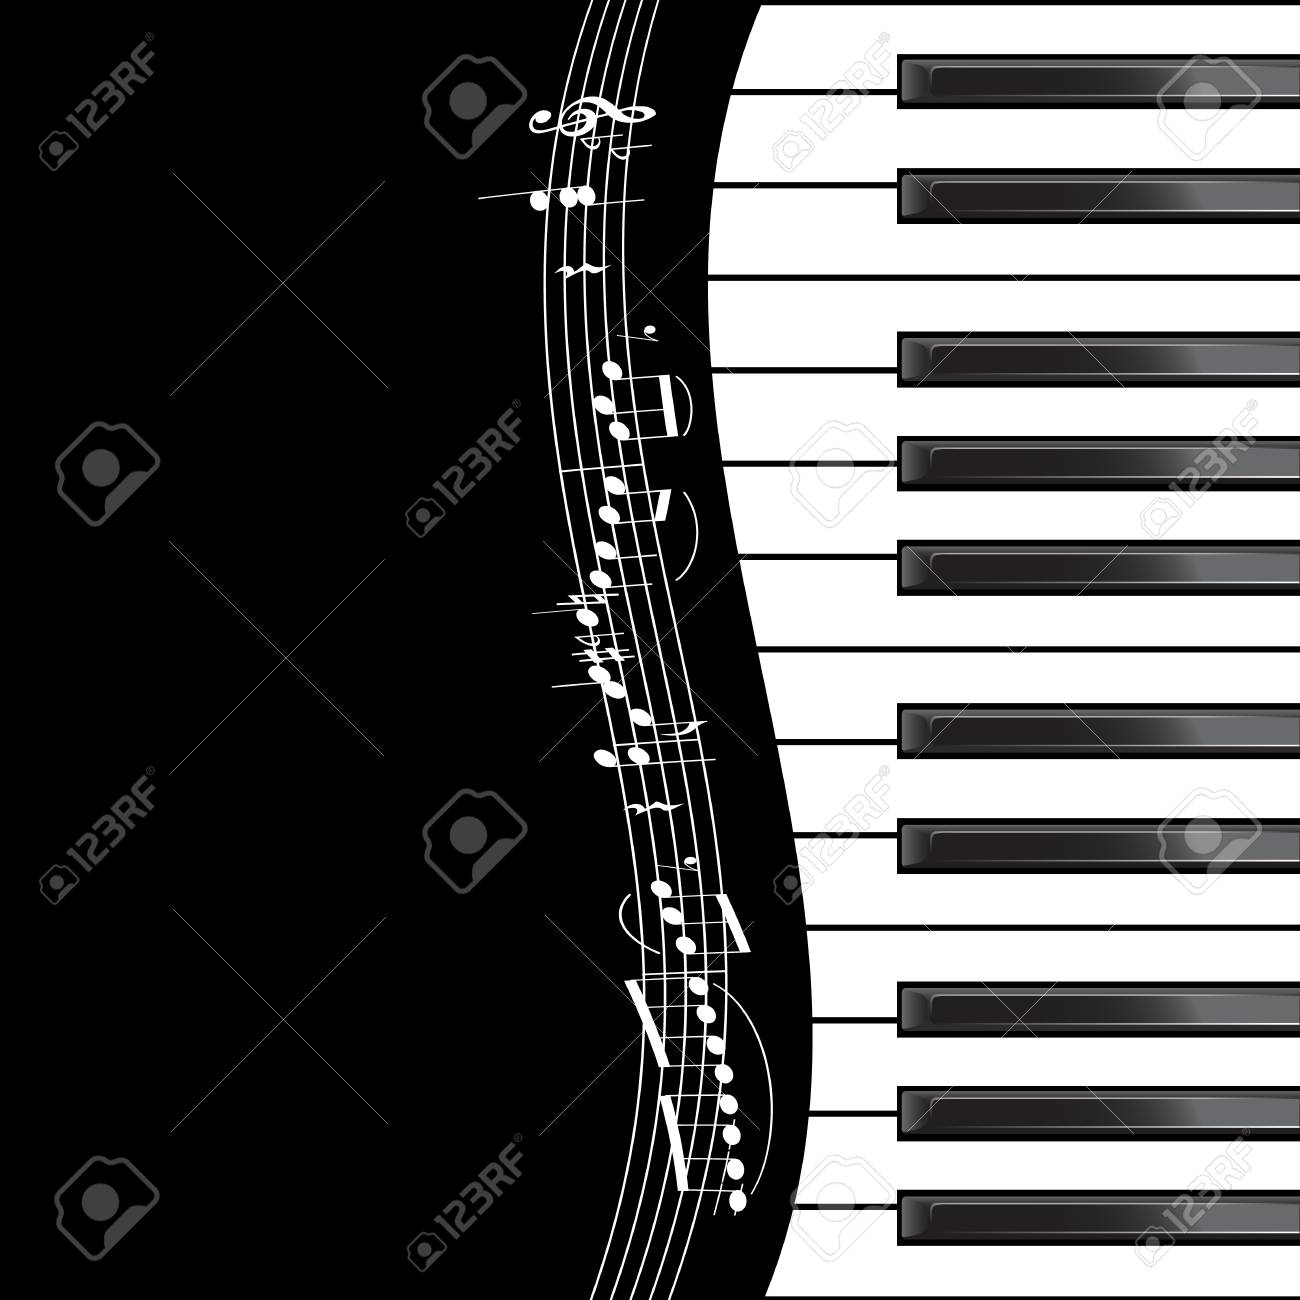 Template With Piano Keyboard With Notes On Black Background ...